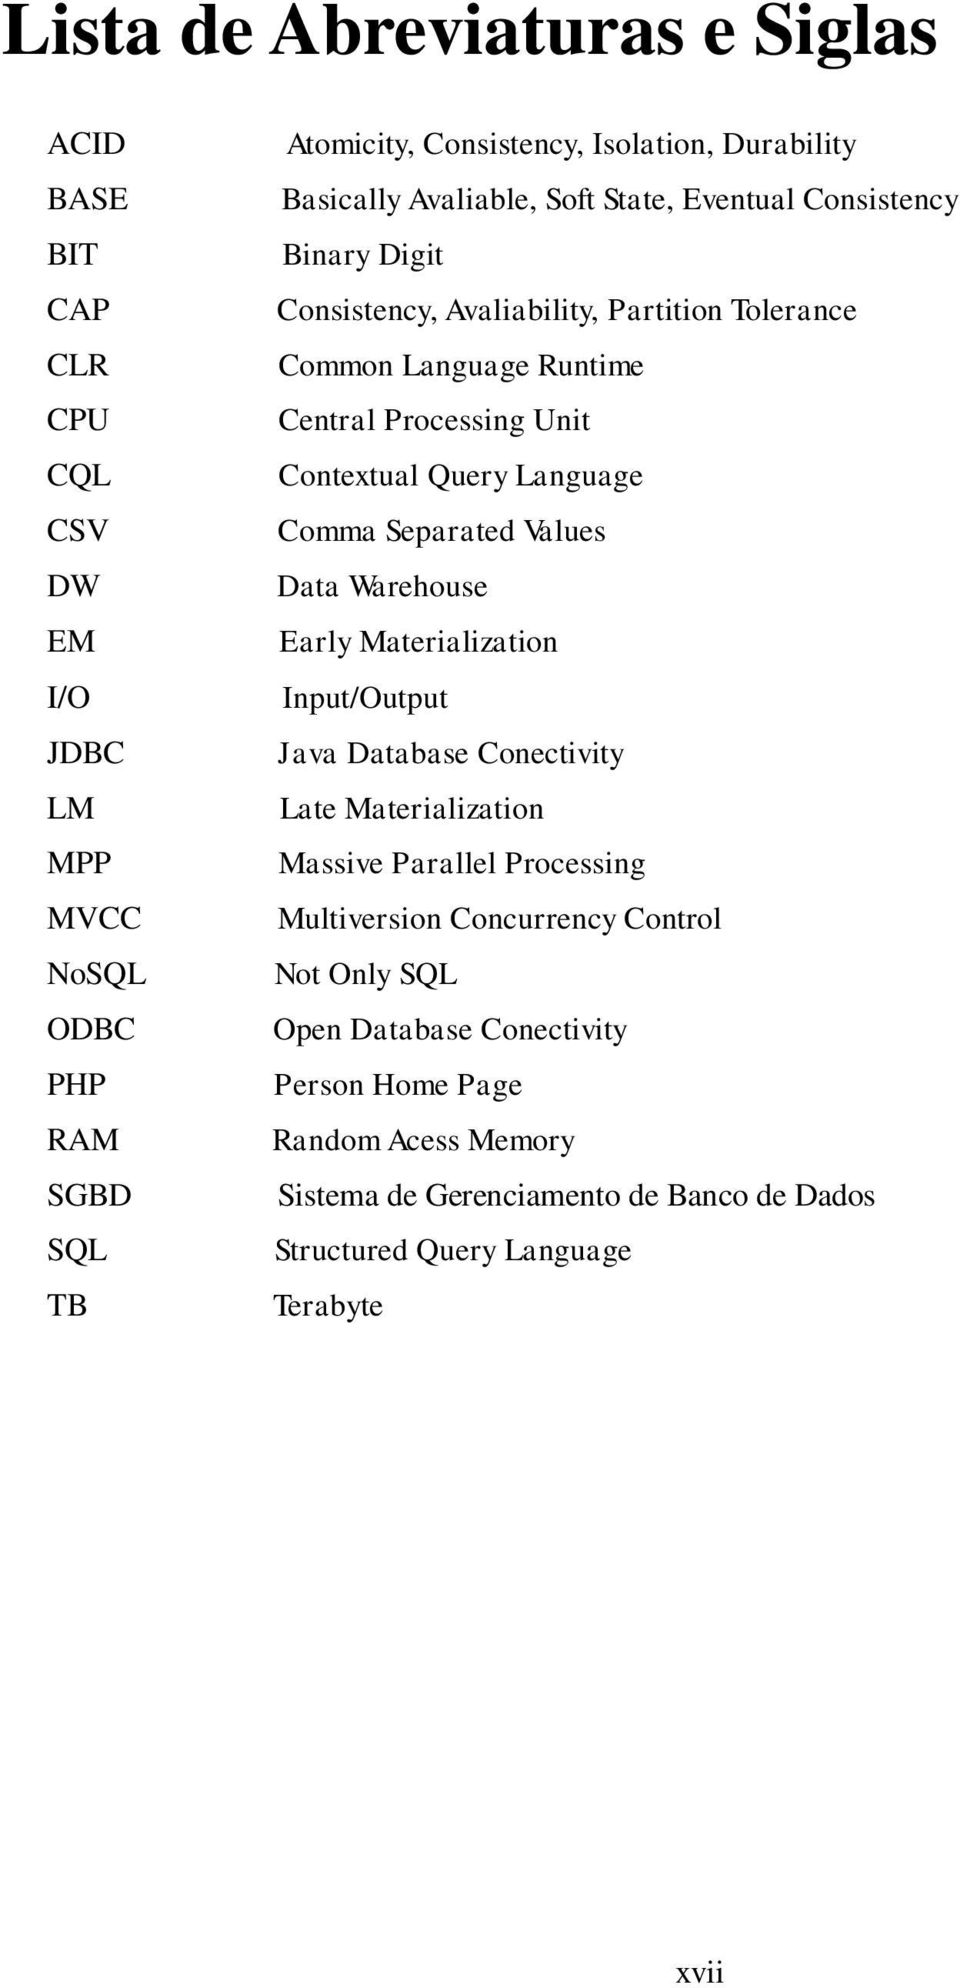 Query Language Comma Separated Values Data Warehouse Early Materialization Input/Output Java Database Conectivity Late Materialization Massive Parallel Processing